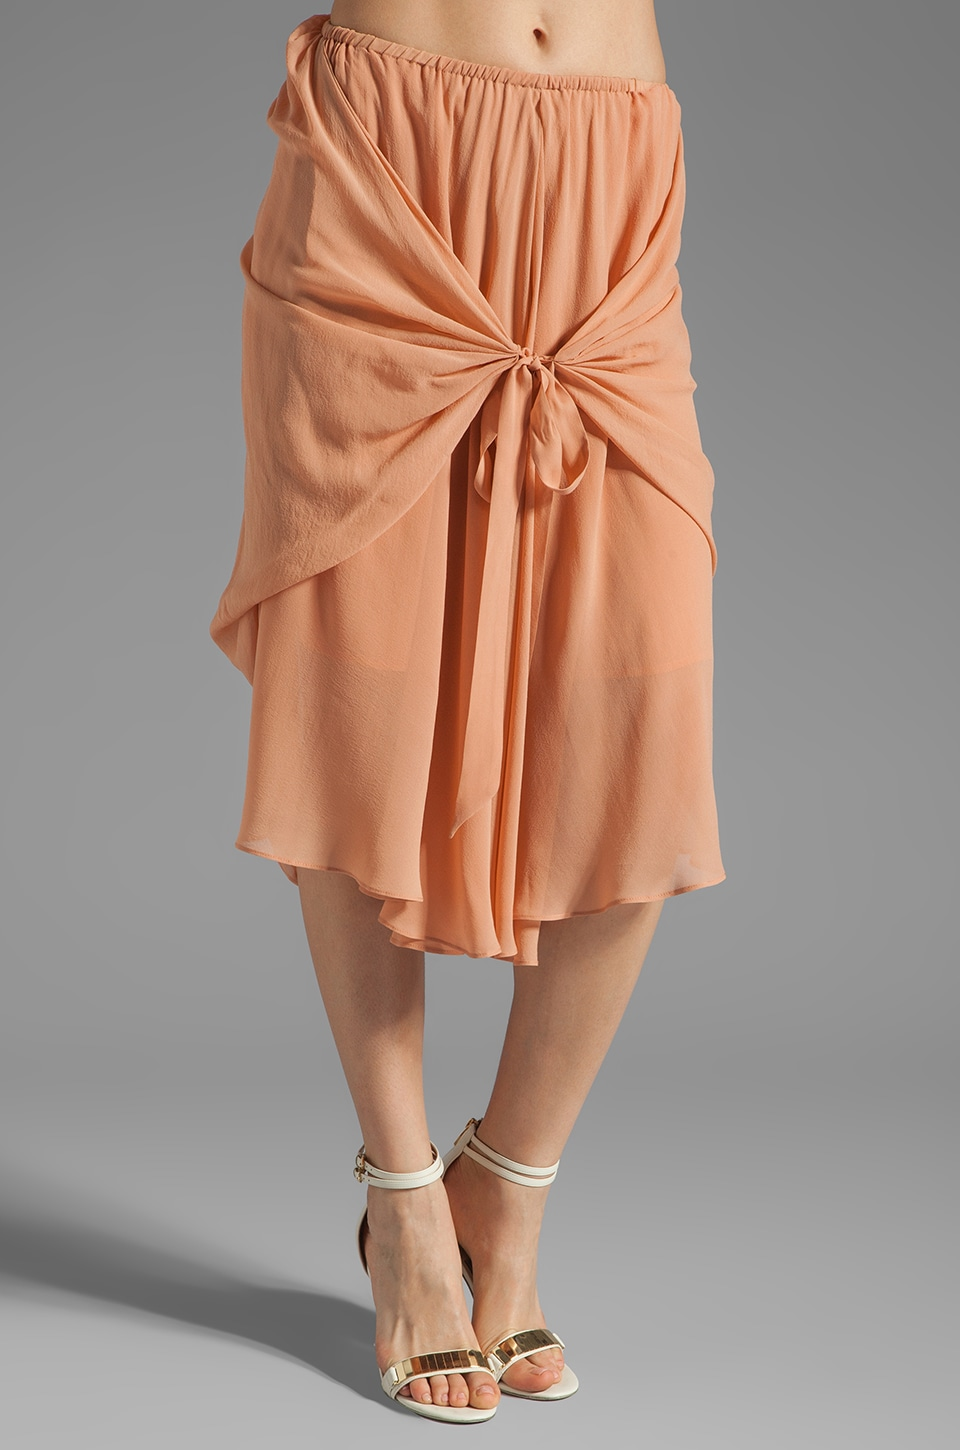 See By Chloe Uneven Hem Wrap Around Skirt in Peach